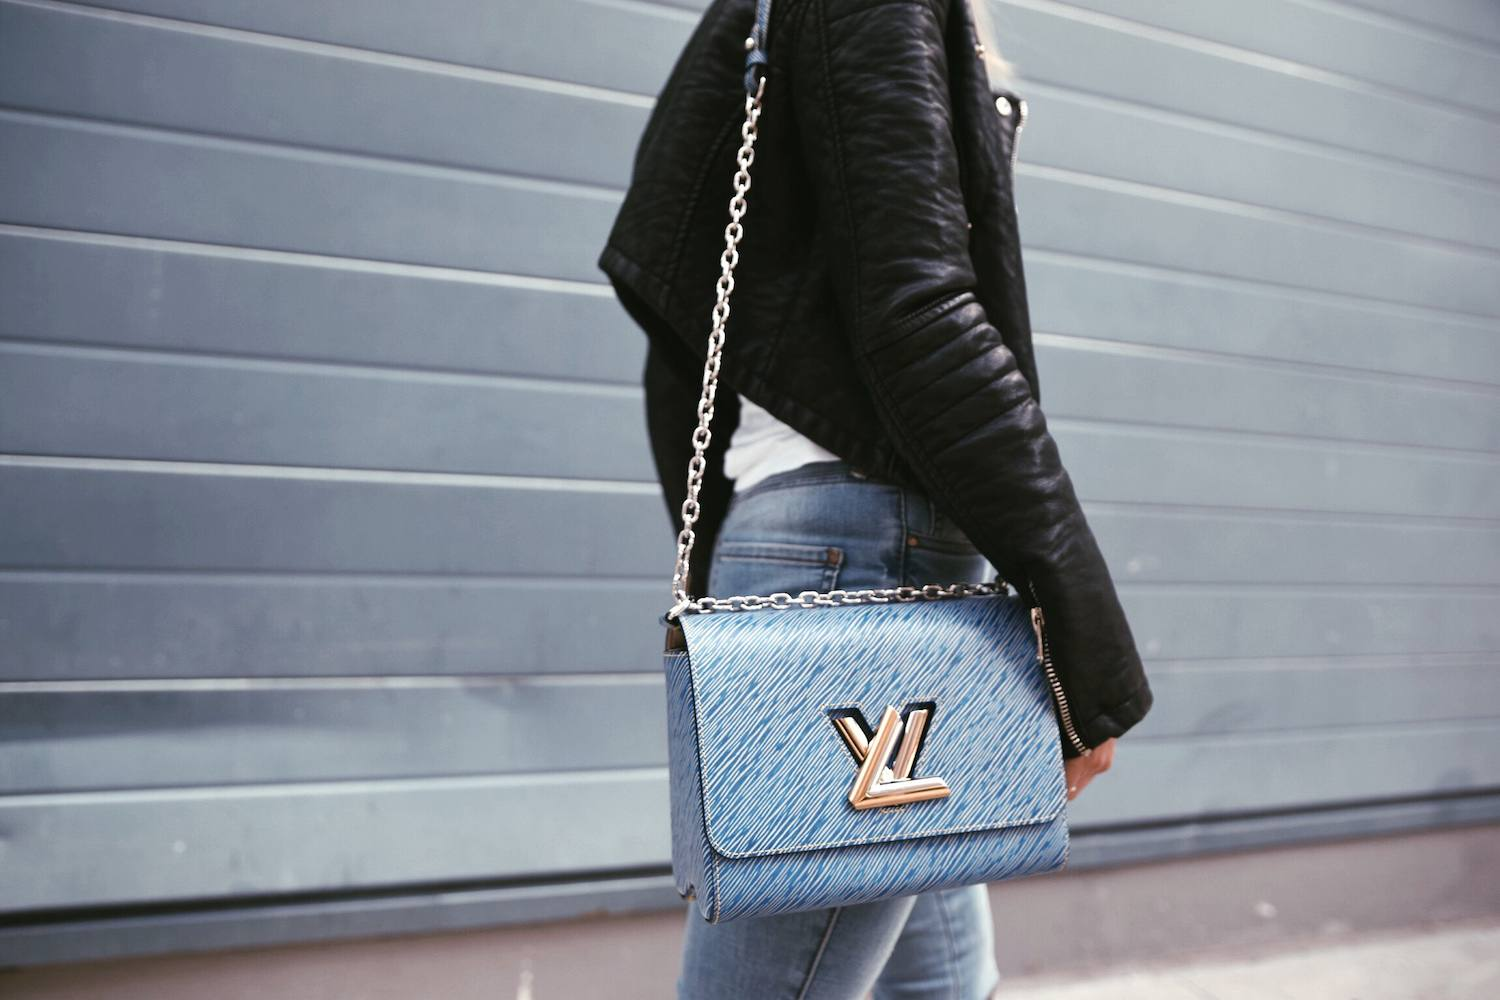 Louis Vuitton Twist Bag 26